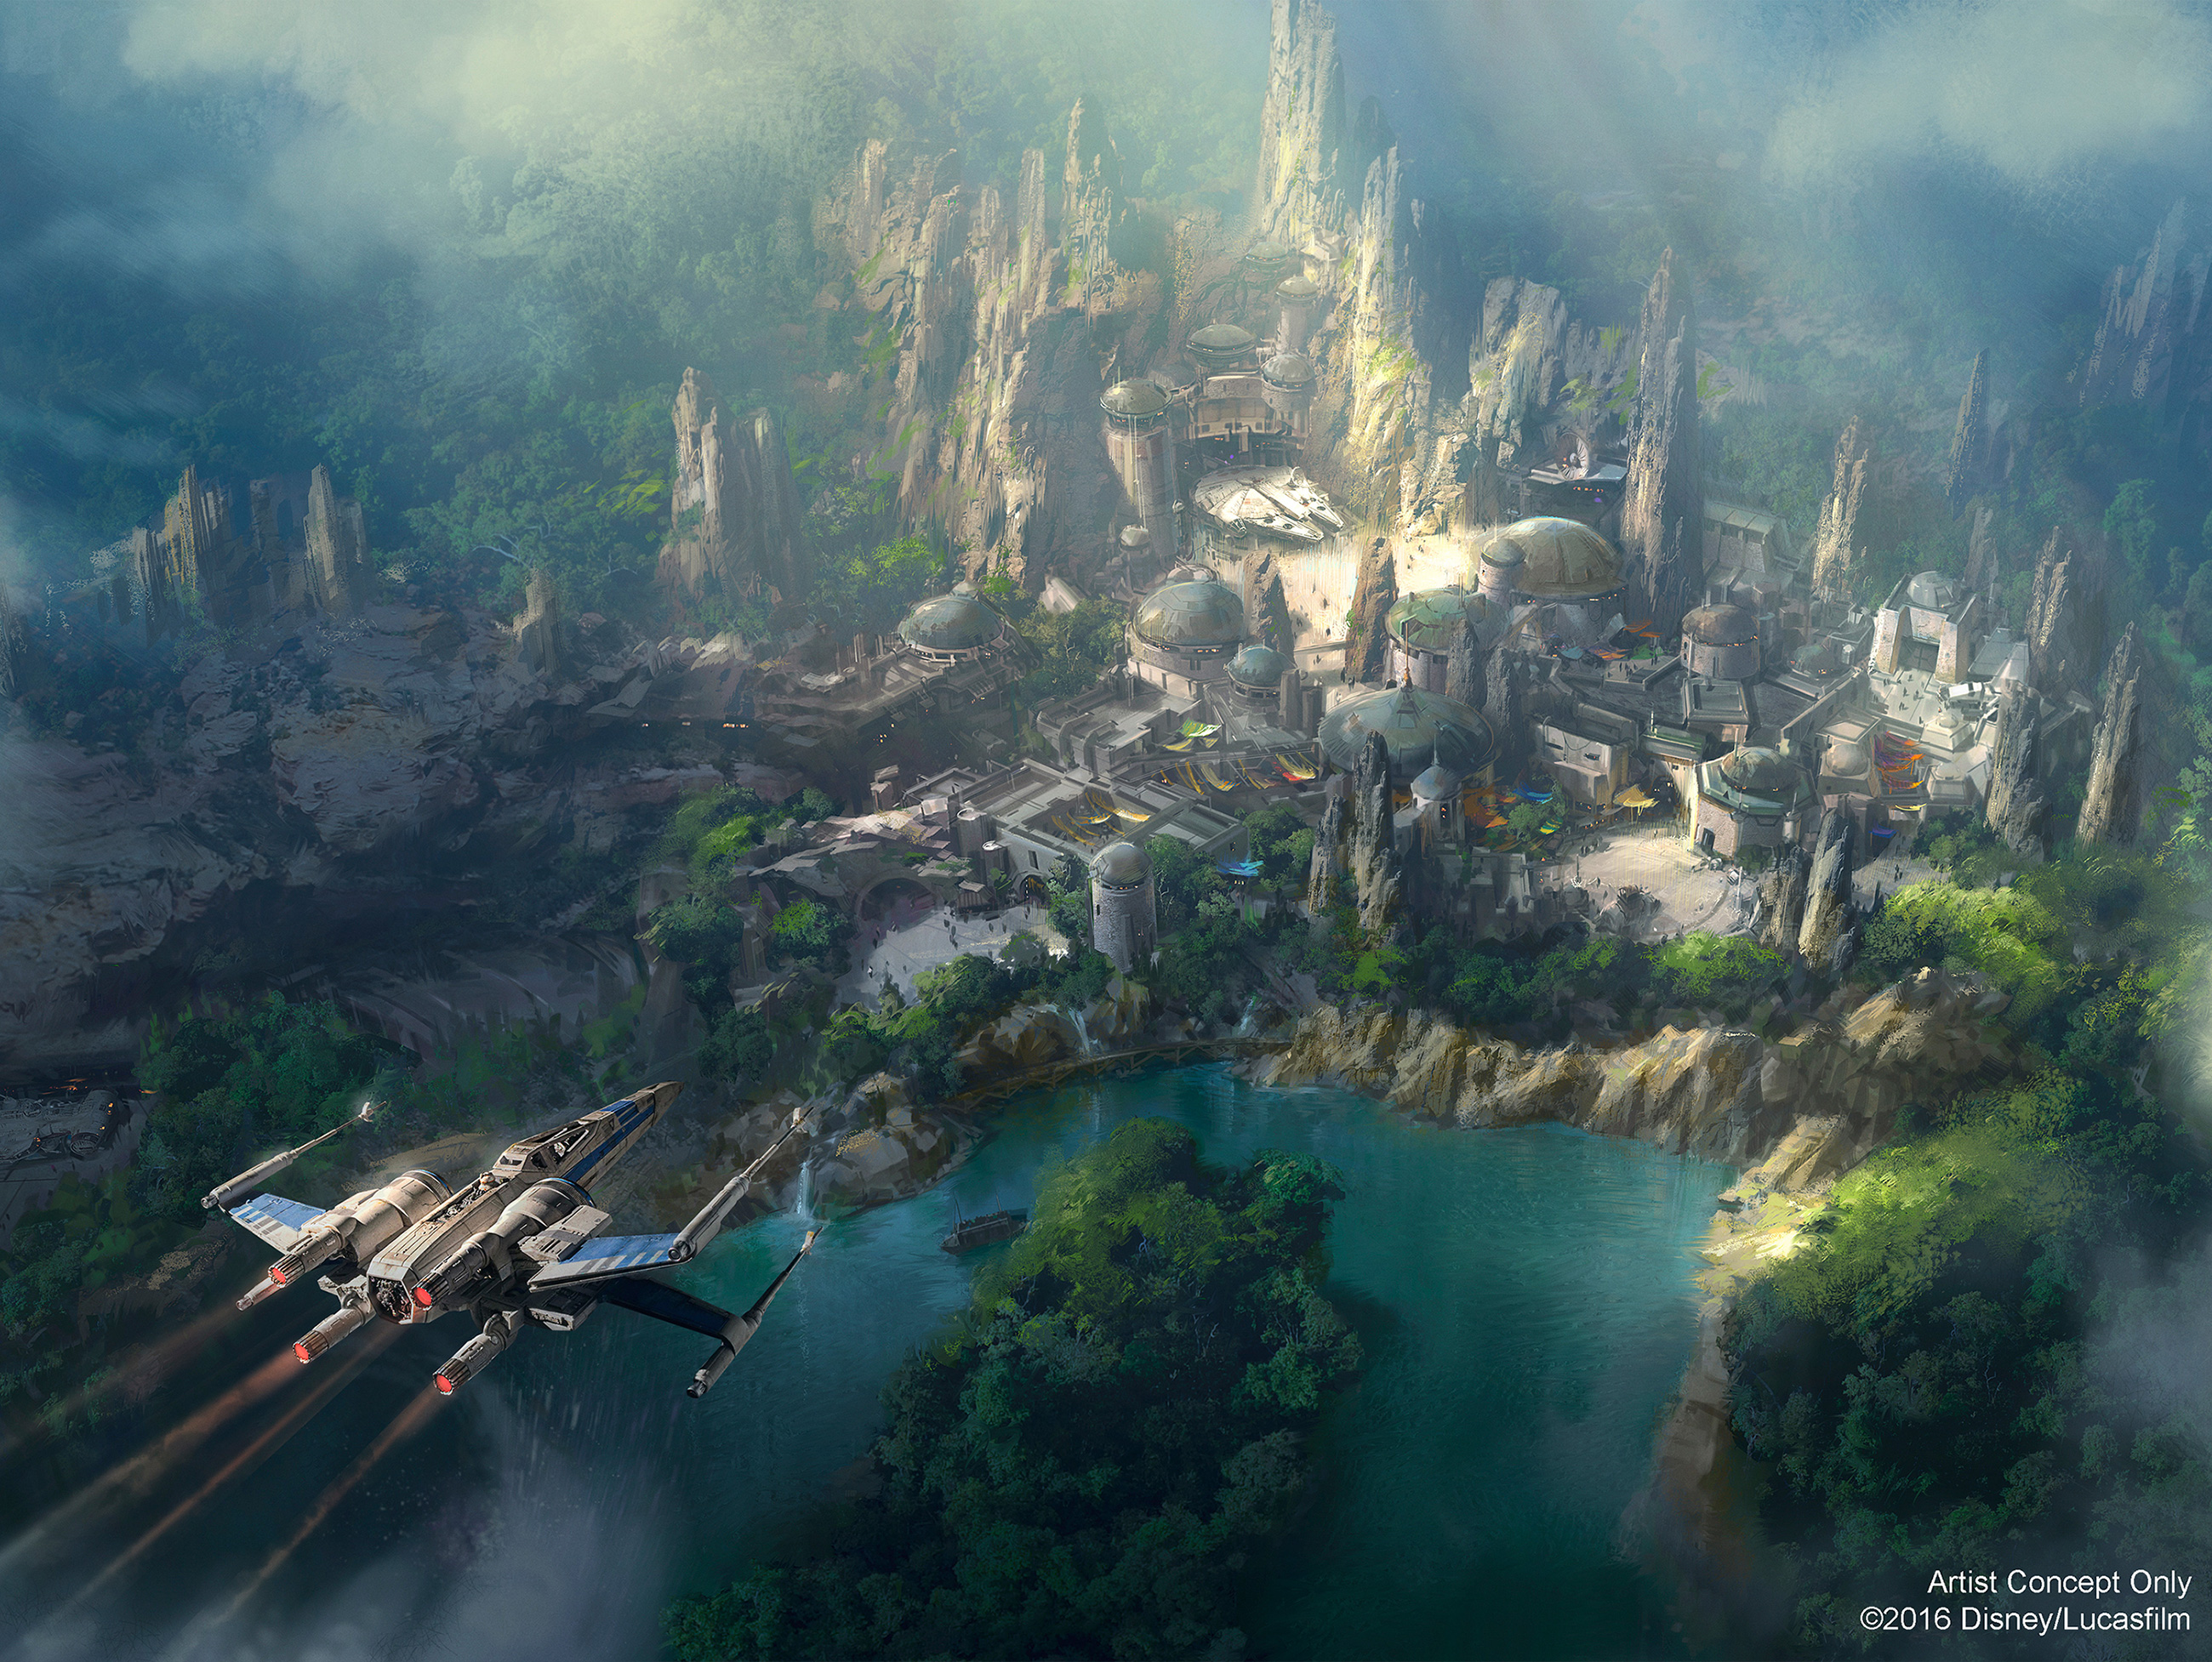 Star Wars Land concept art